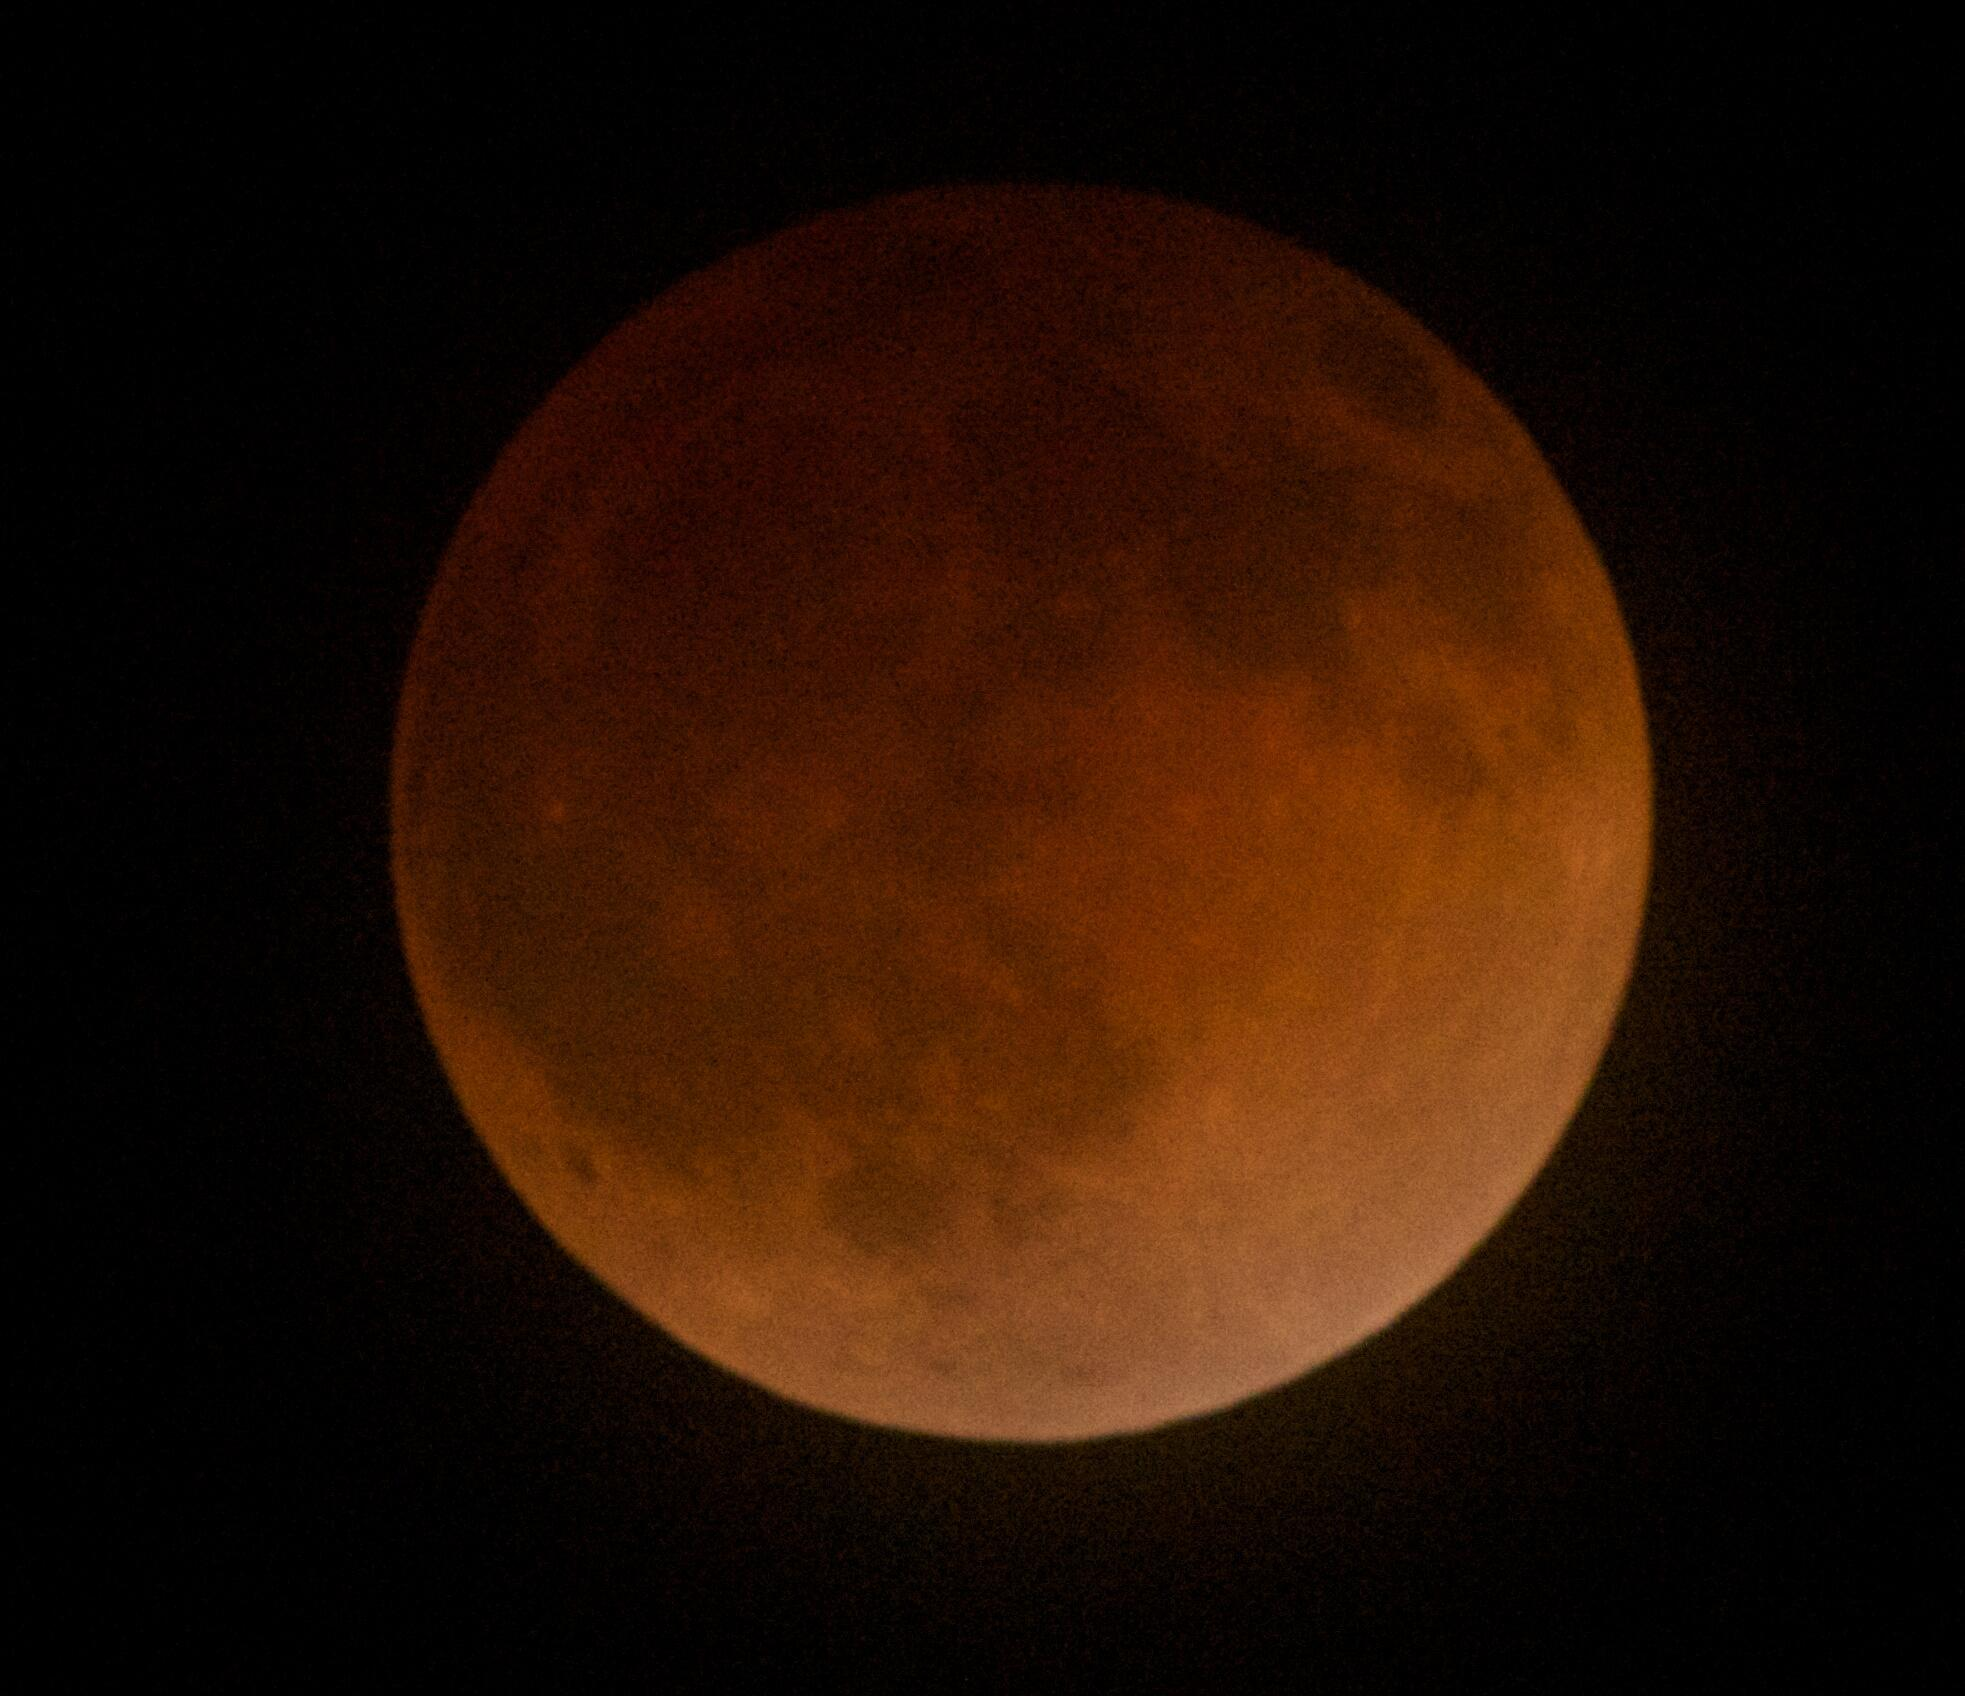 max totality, SF Bay Area http://t.co/HchMA8A9Px